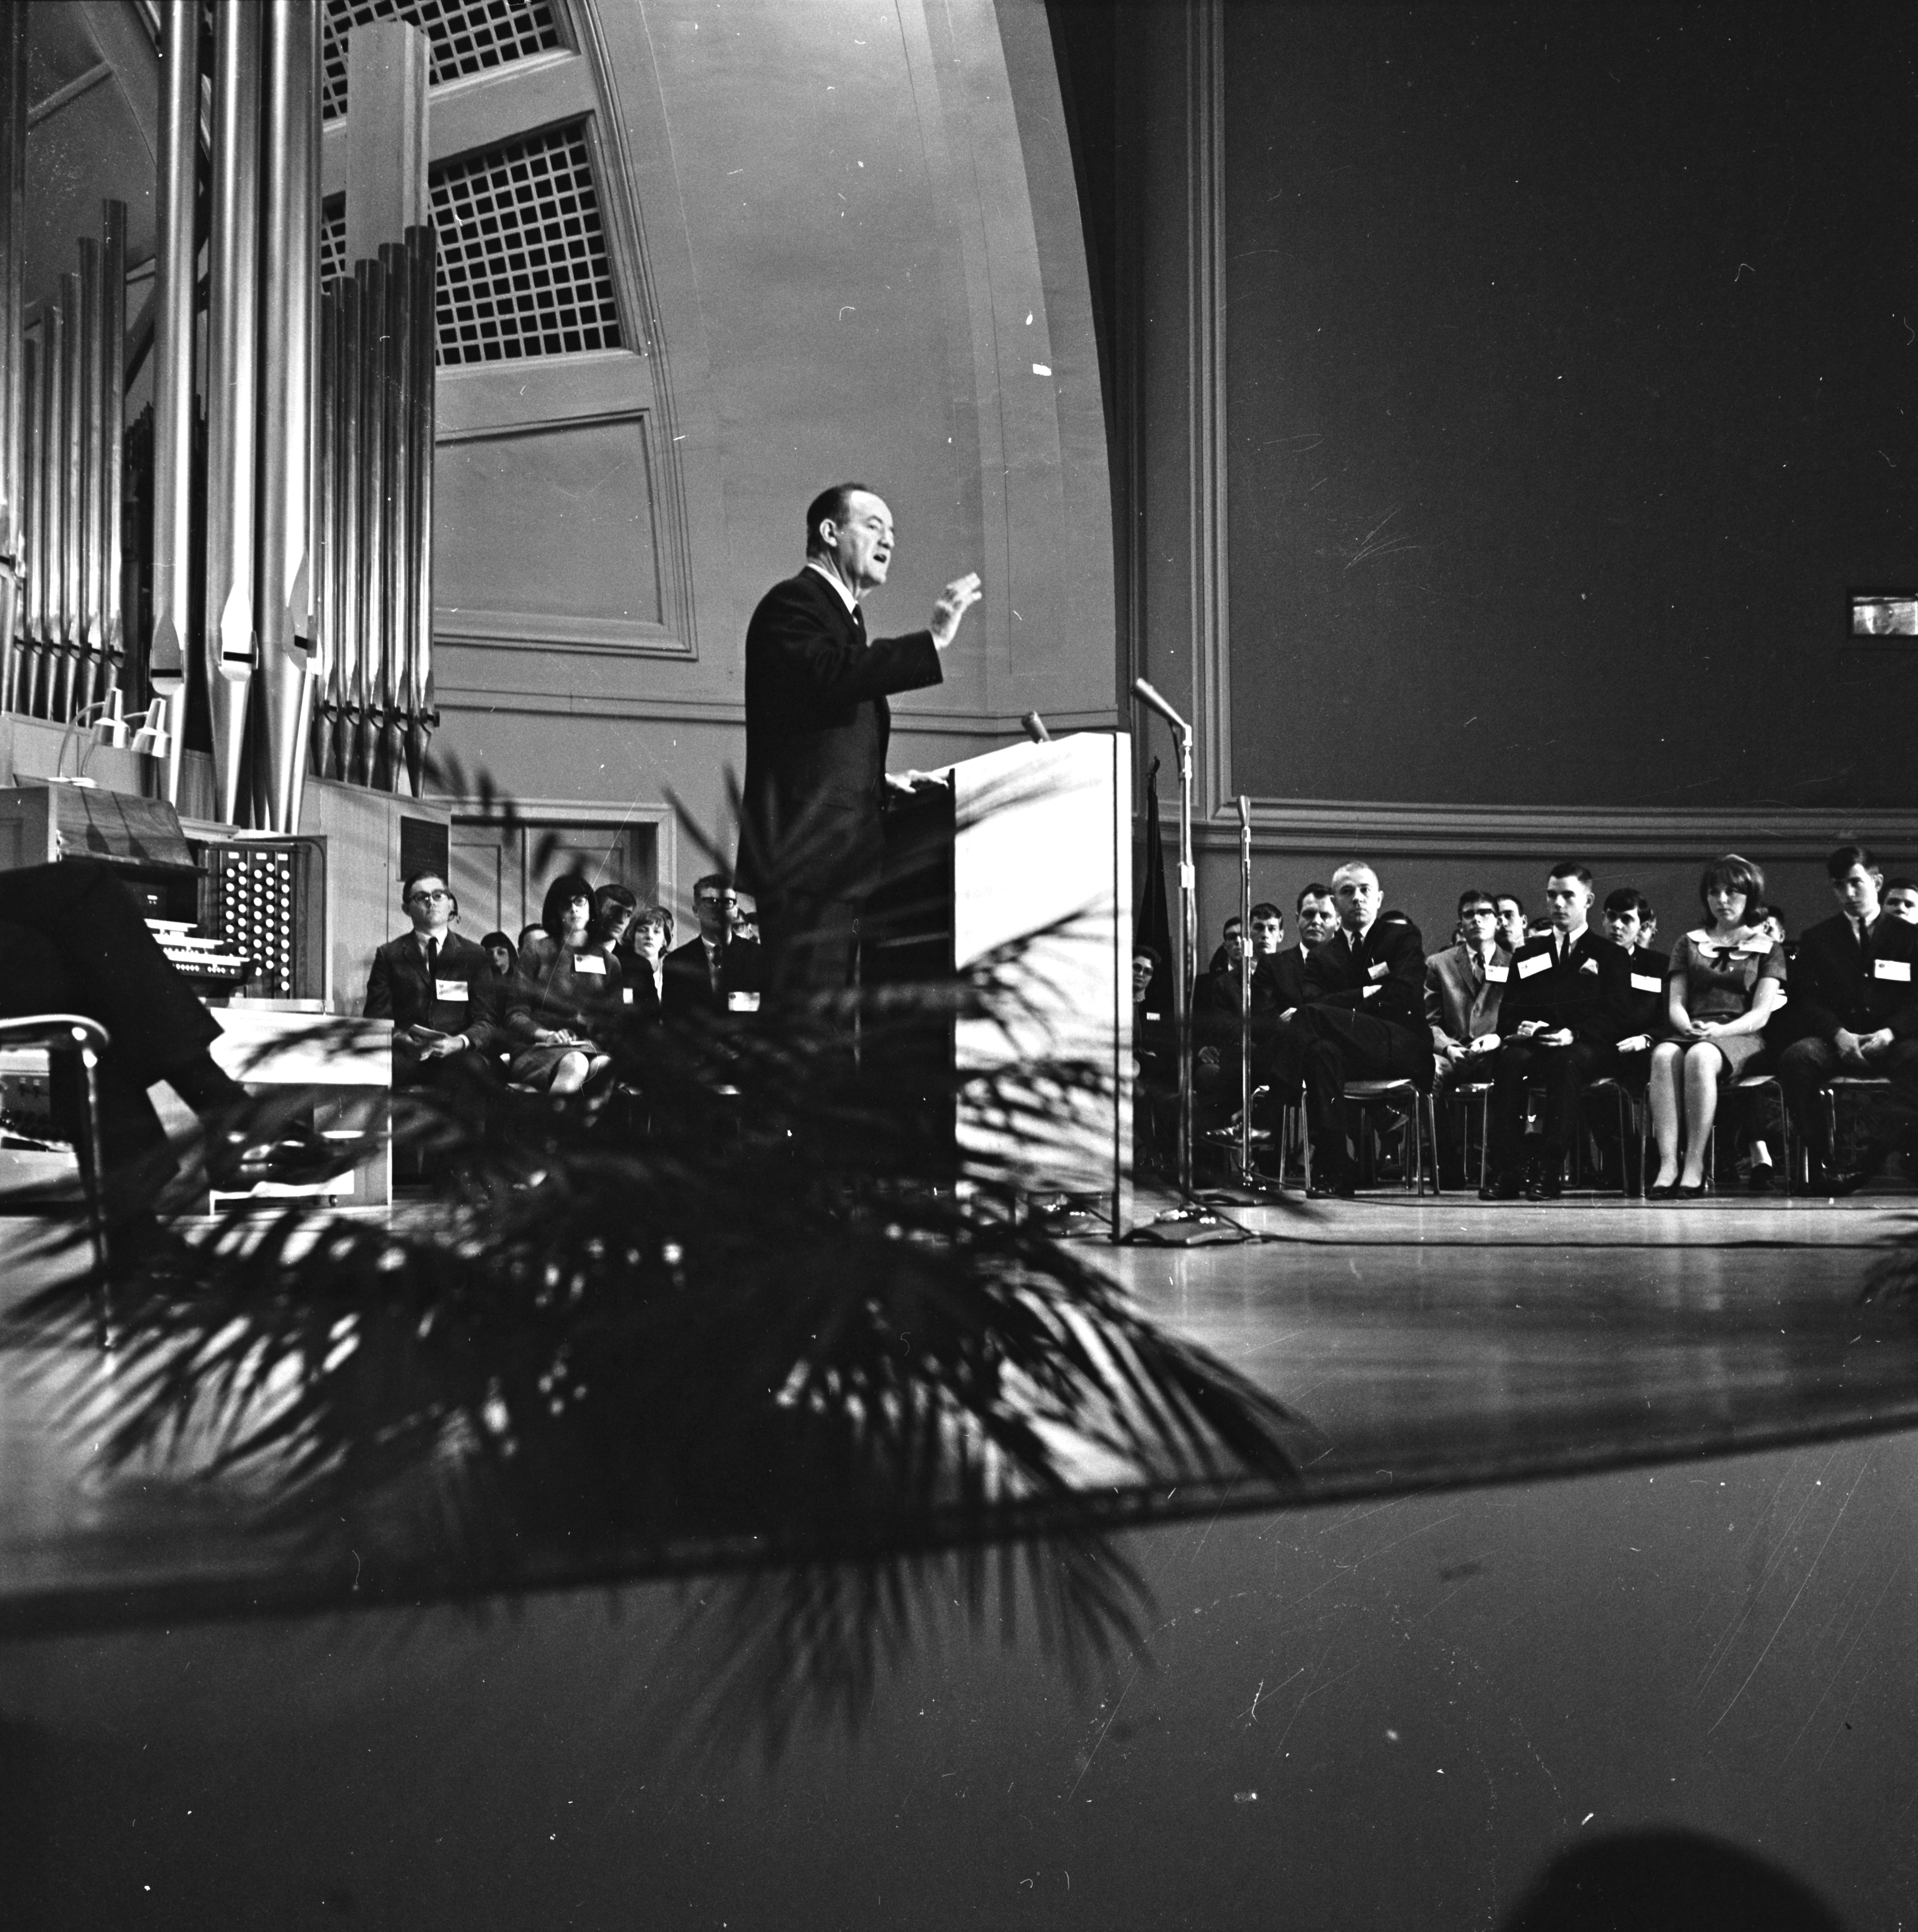 Vice President Hubert Humphrey speaks at Pease Auditorium in Ypsilanti, February 1966 image